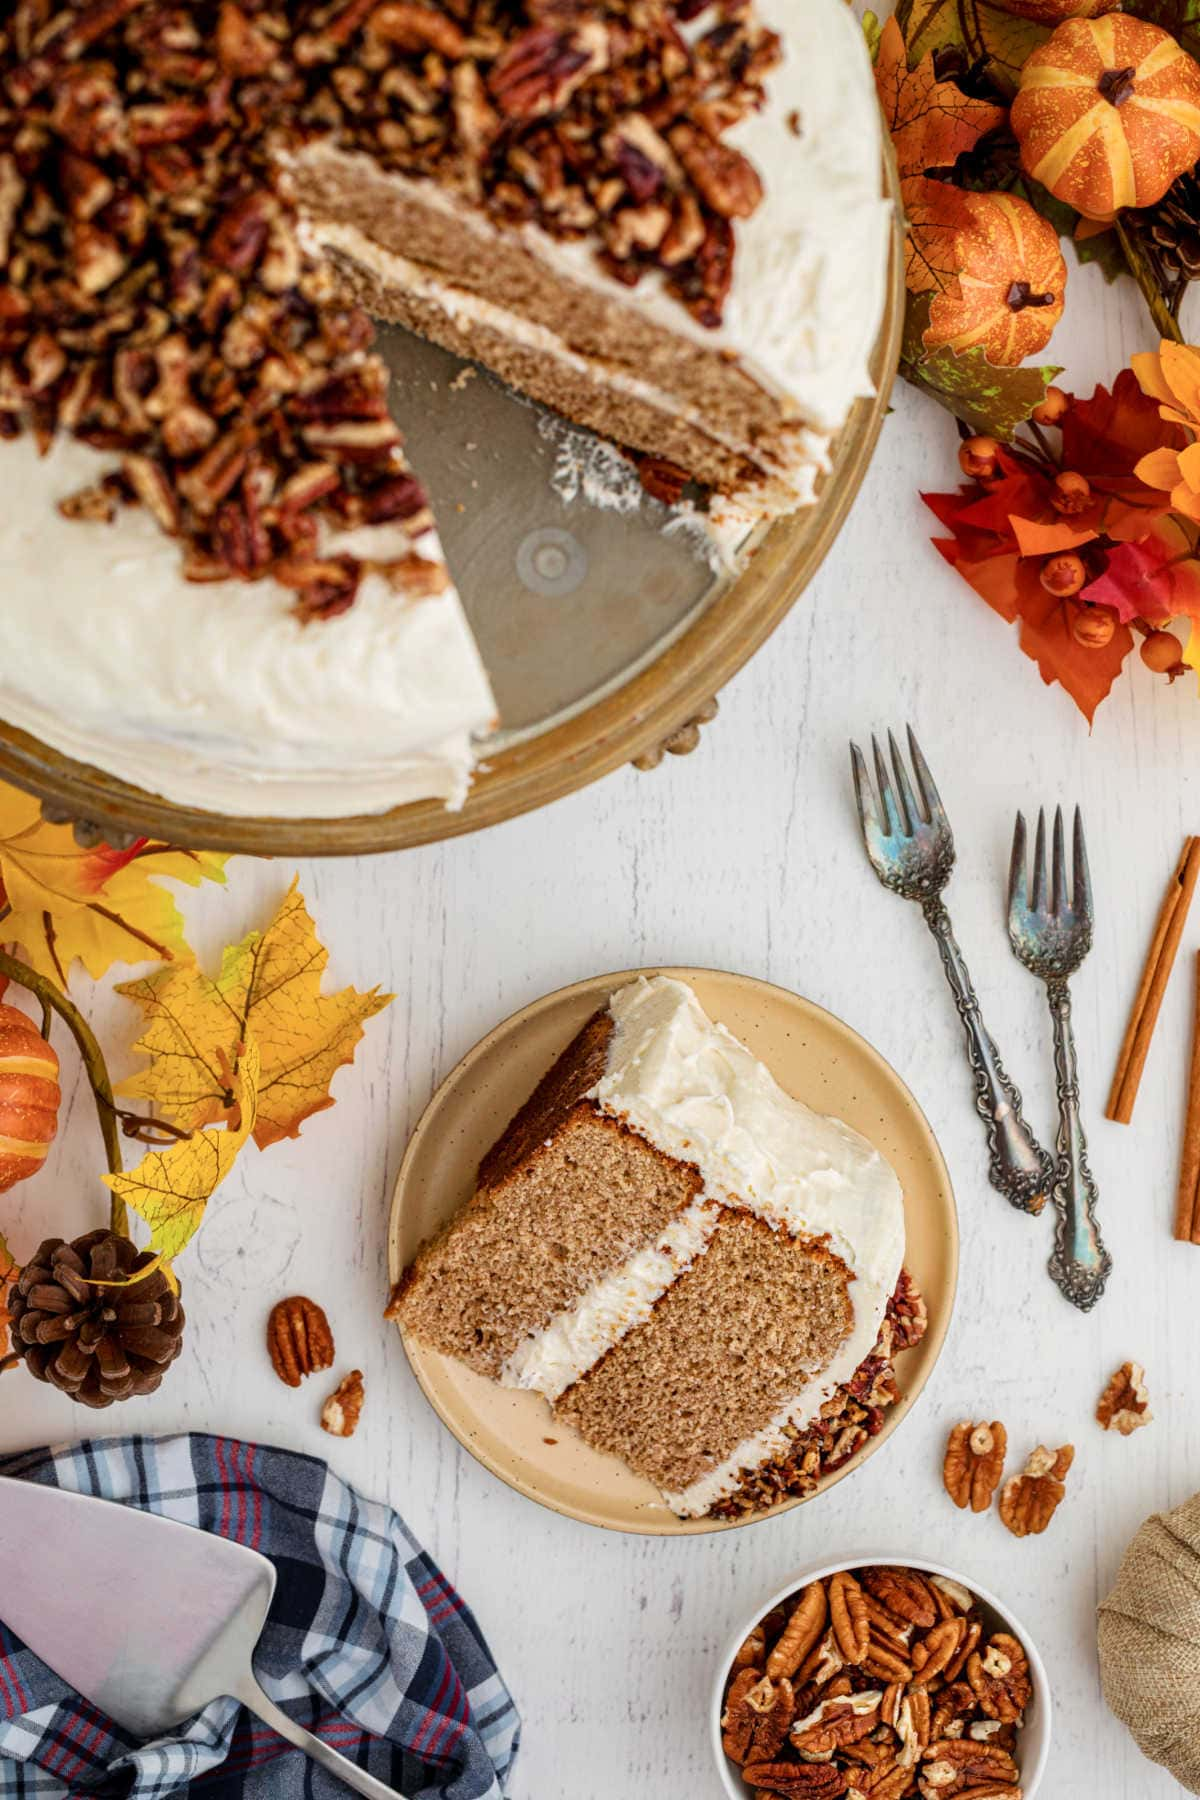 Overhead view of a table with a spice cake on it.